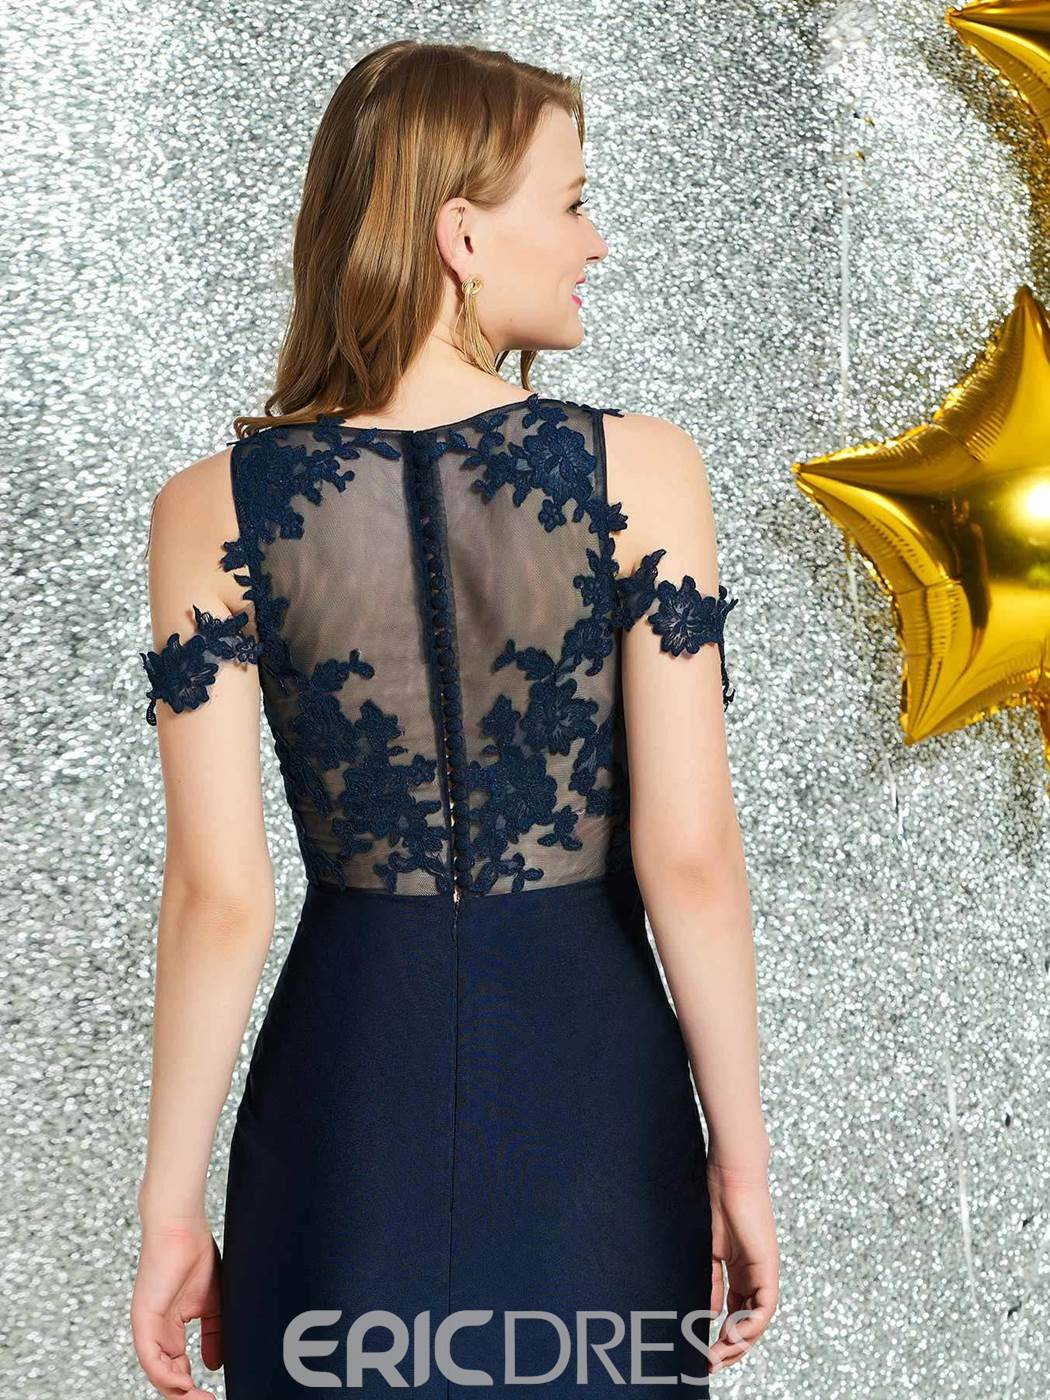 Ericdresss Sheath Appliques Short Cocktail Dress 2019